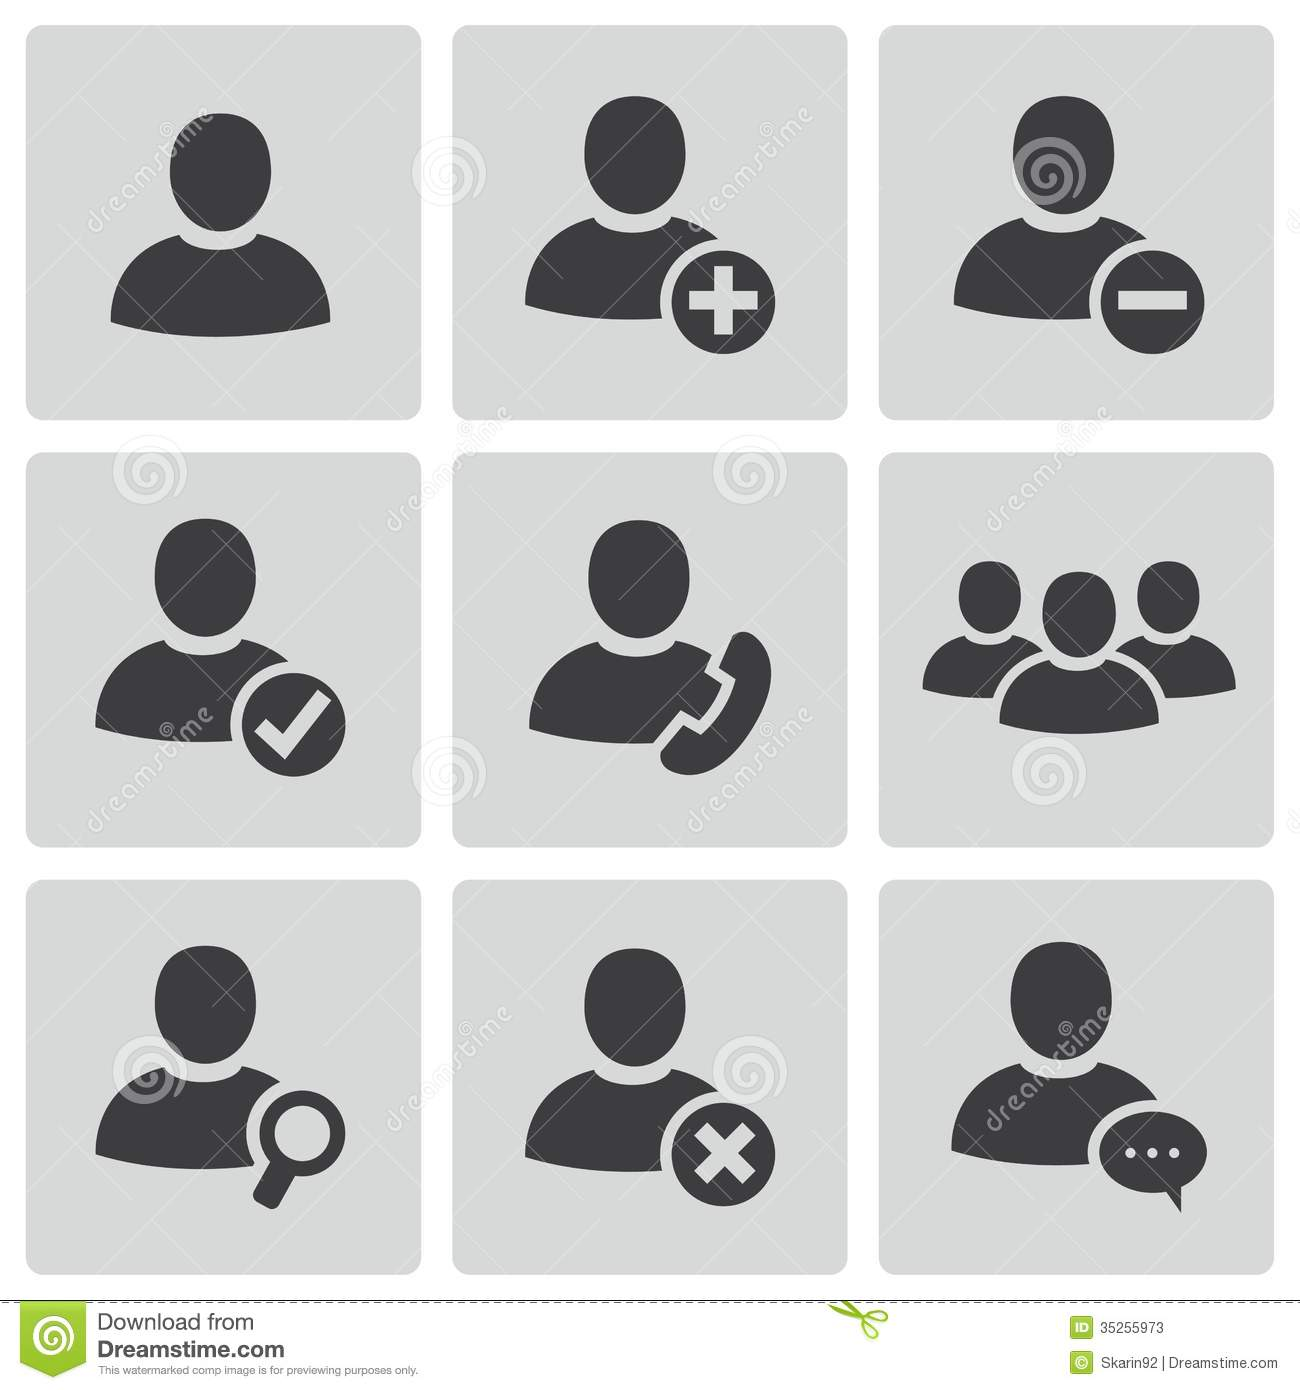 9 People Profile Vector Icons Images